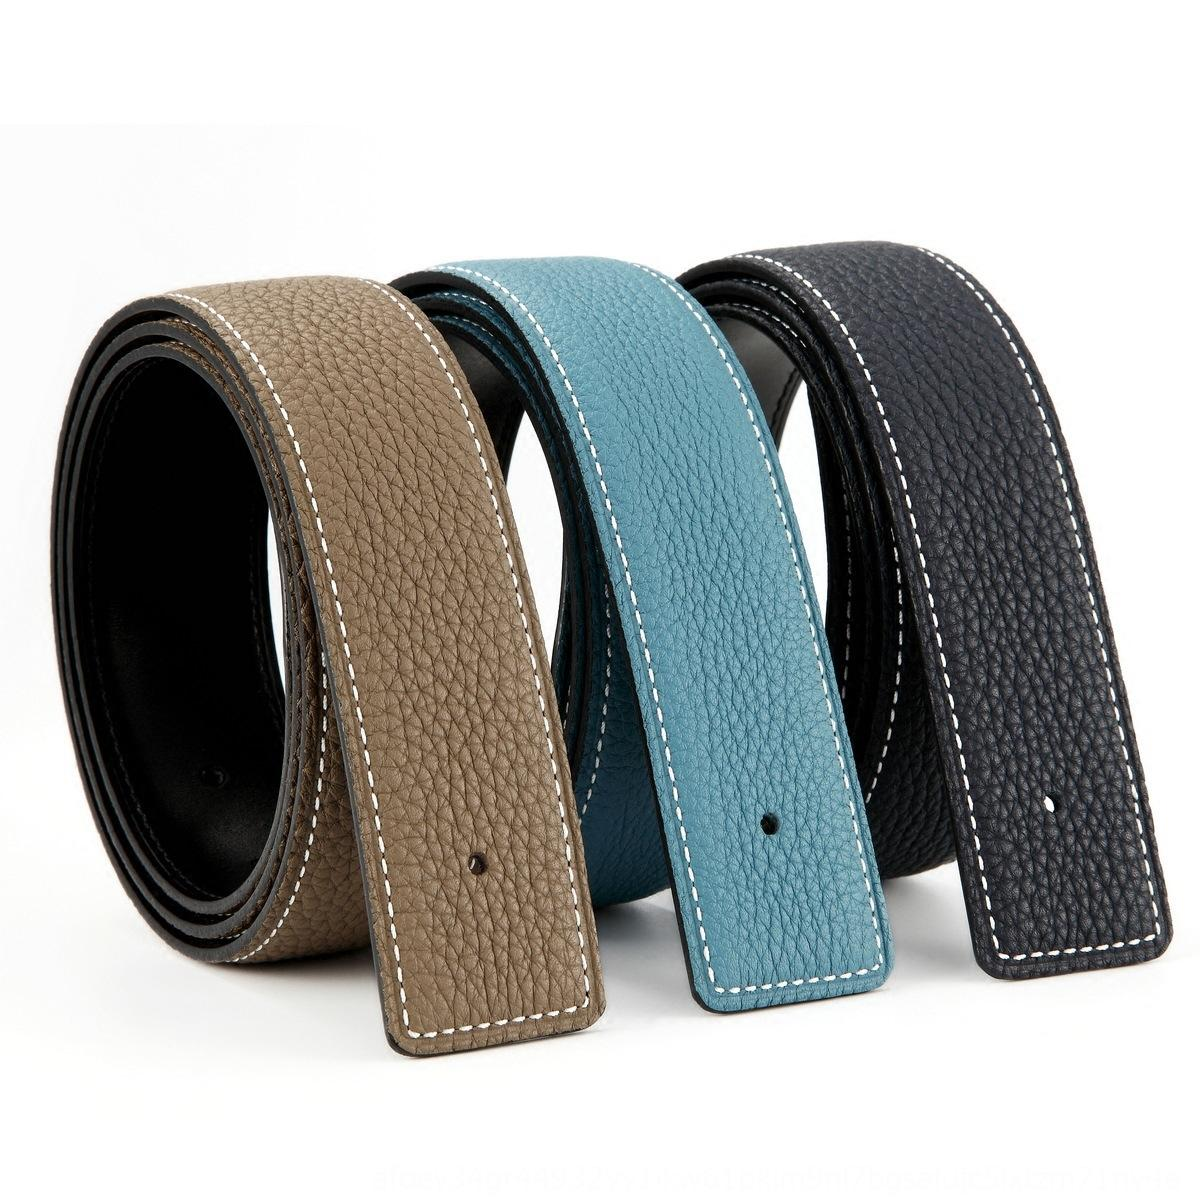 3.2/3.8 genuine leather original first layer cowhide strip without head headless belt beltlitchi pattern perforated belt for men h5GCn h5GCn